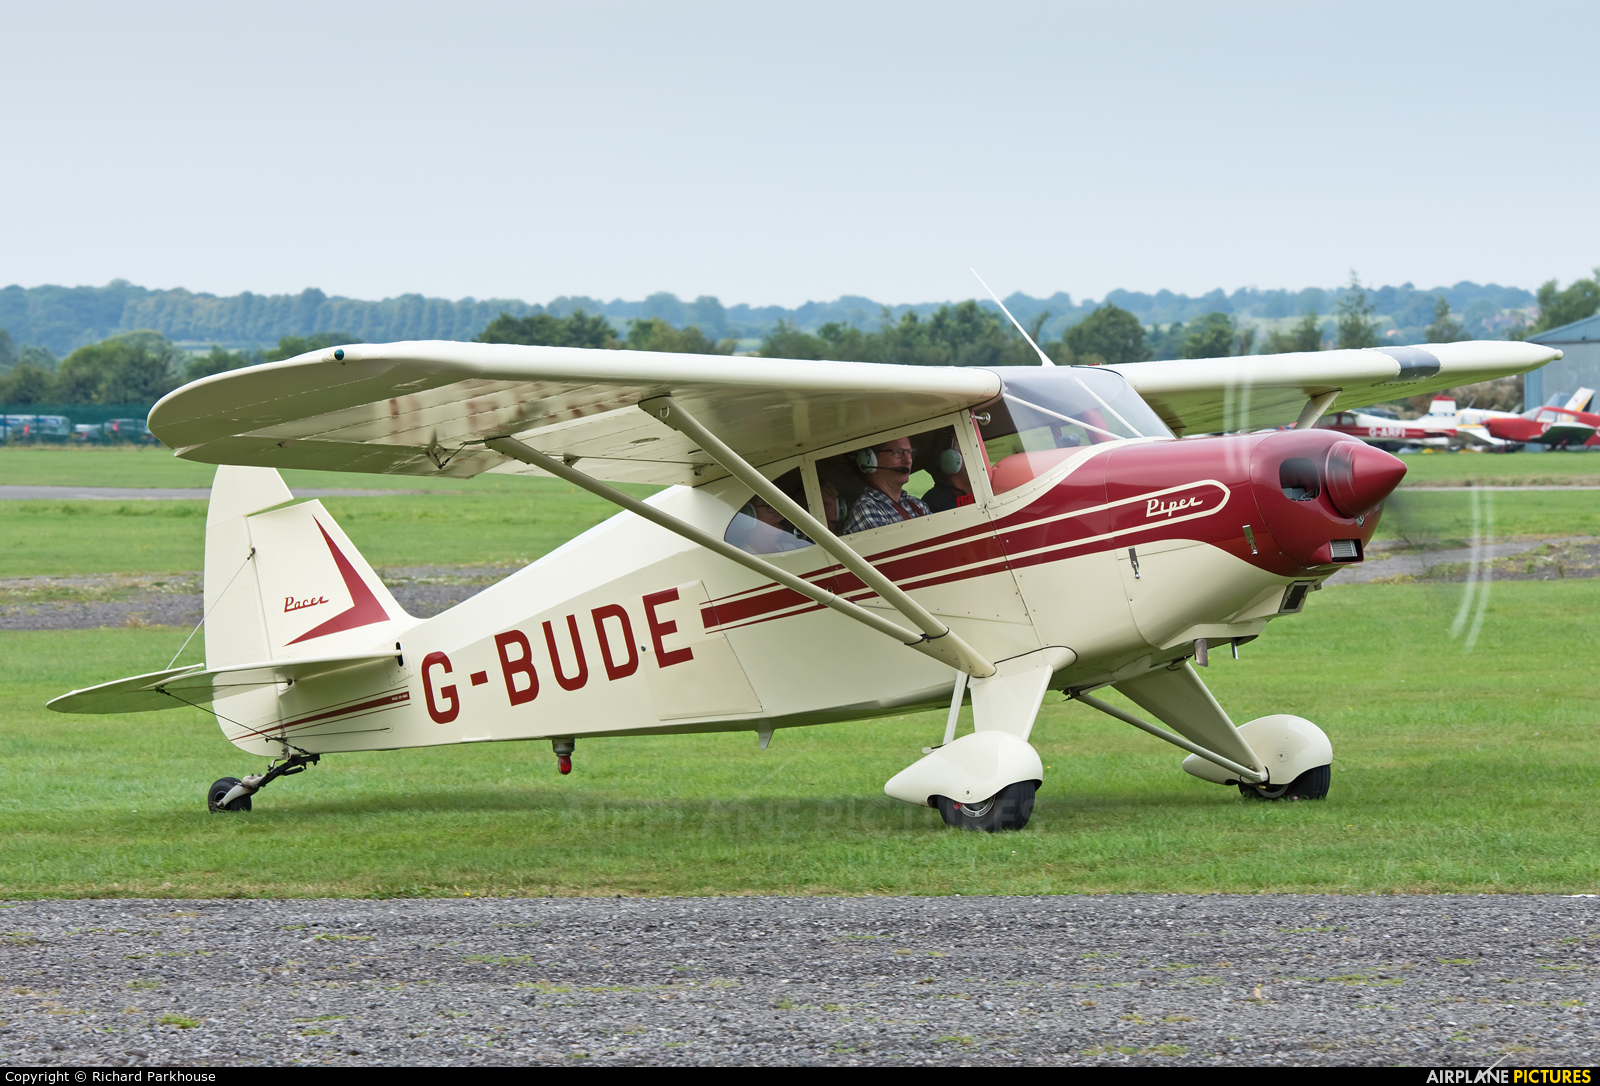 Private G-BUDE aircraft at Henstridge Airfield